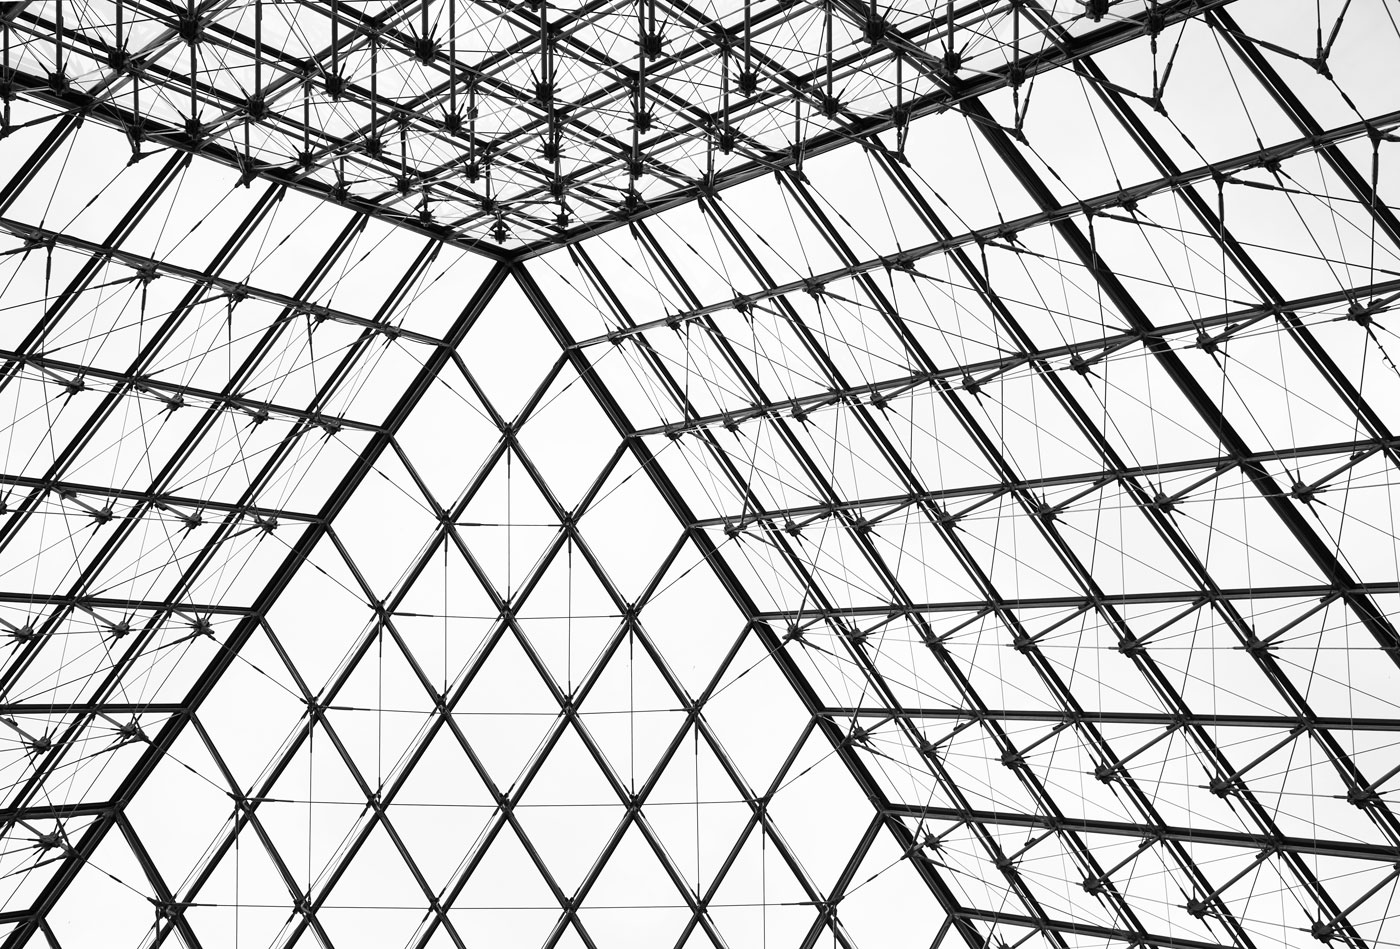 Interior of Pyramid, Muse du Louvre, Paris, France